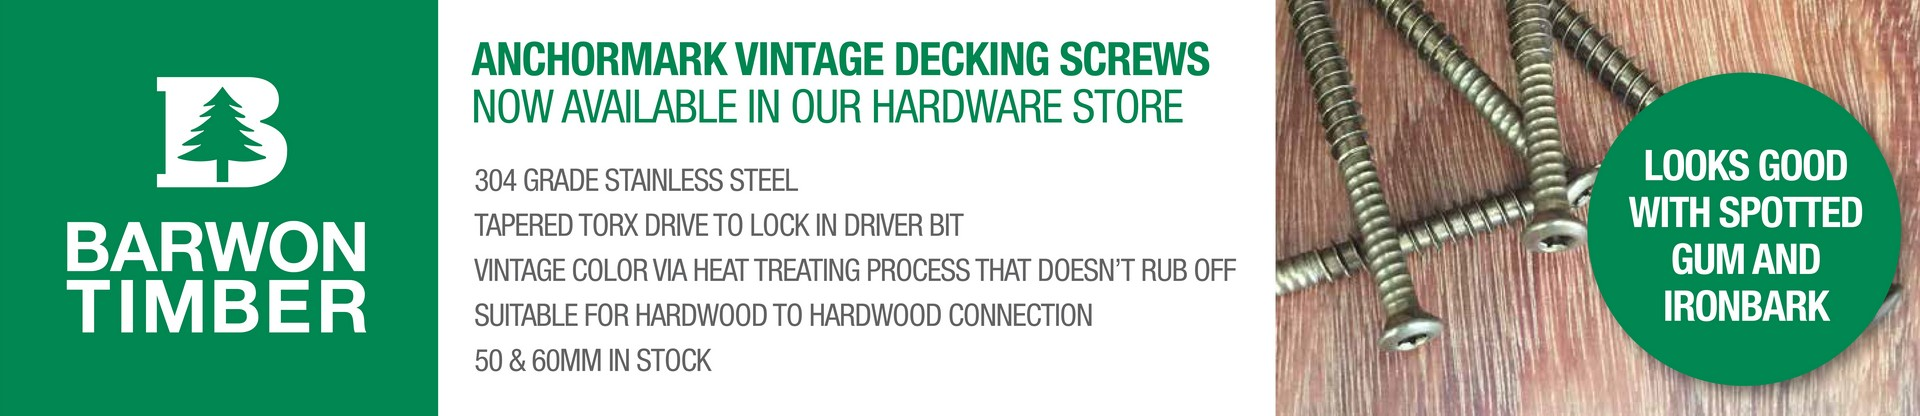 Barwon Timber Decking Screws